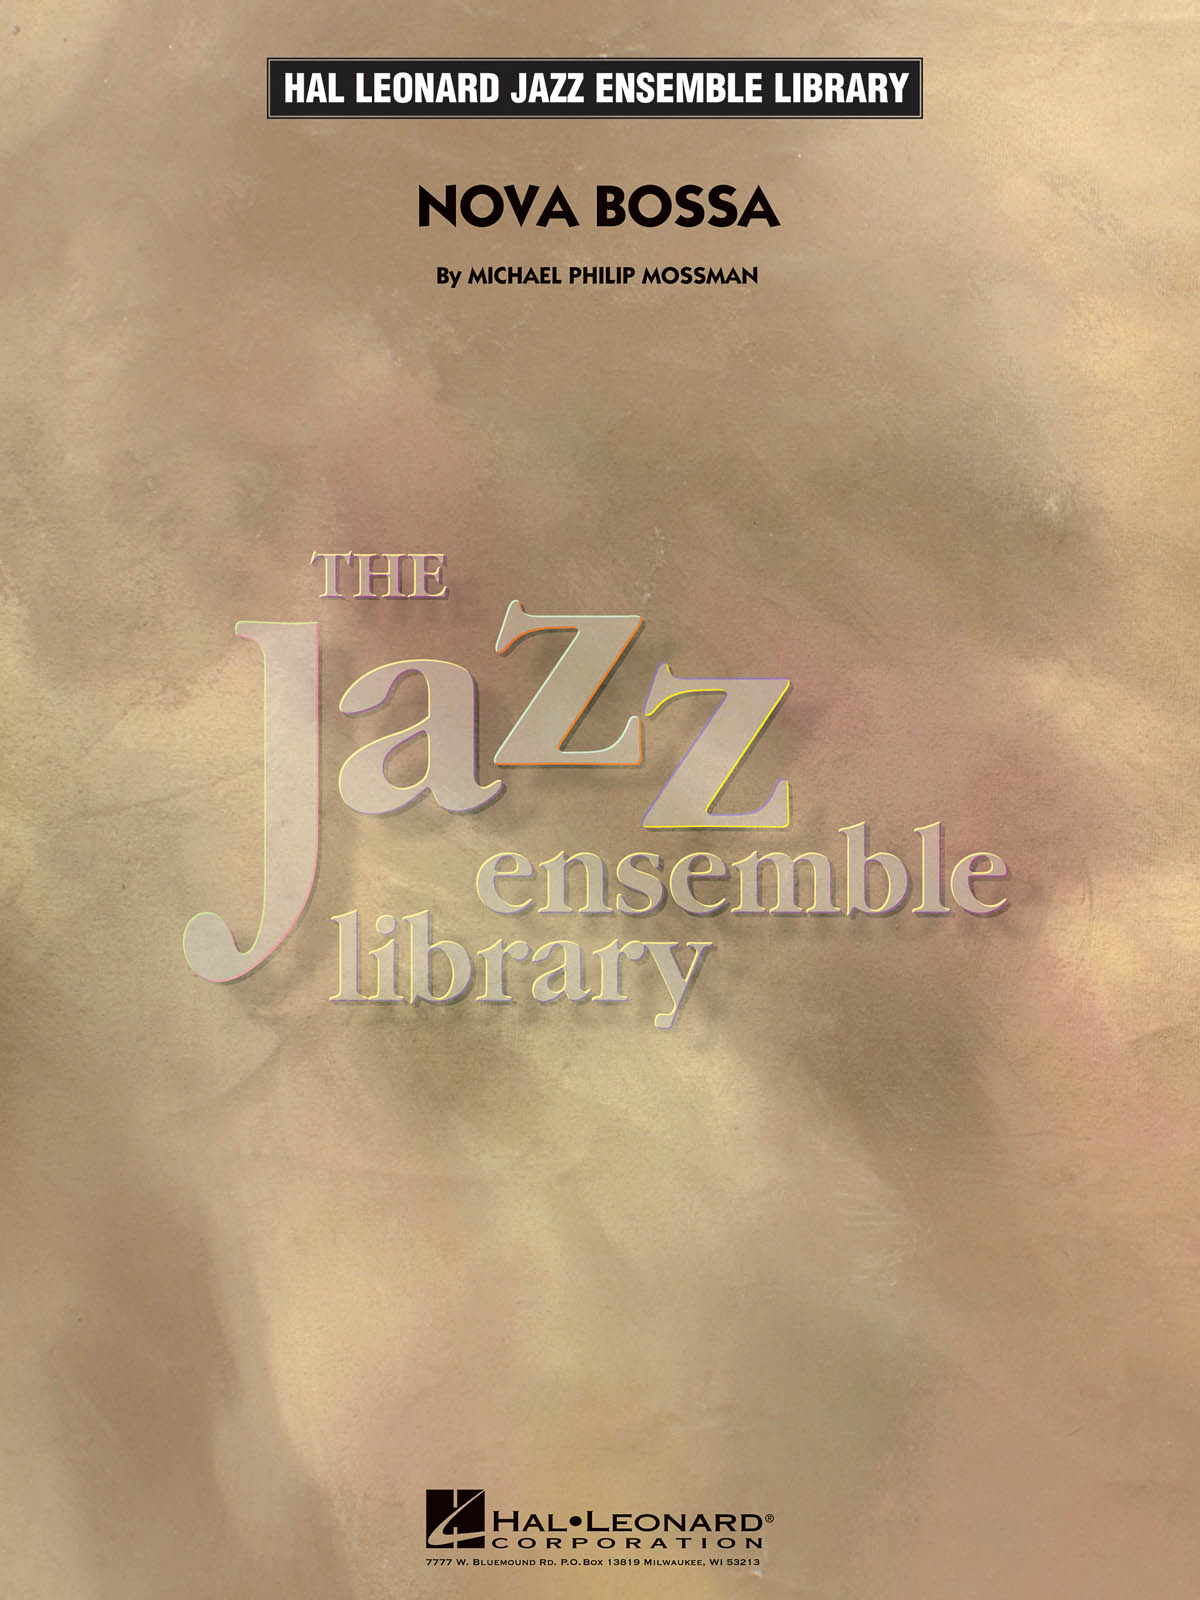 Nova Bossa: The Jazz Ensemble Library